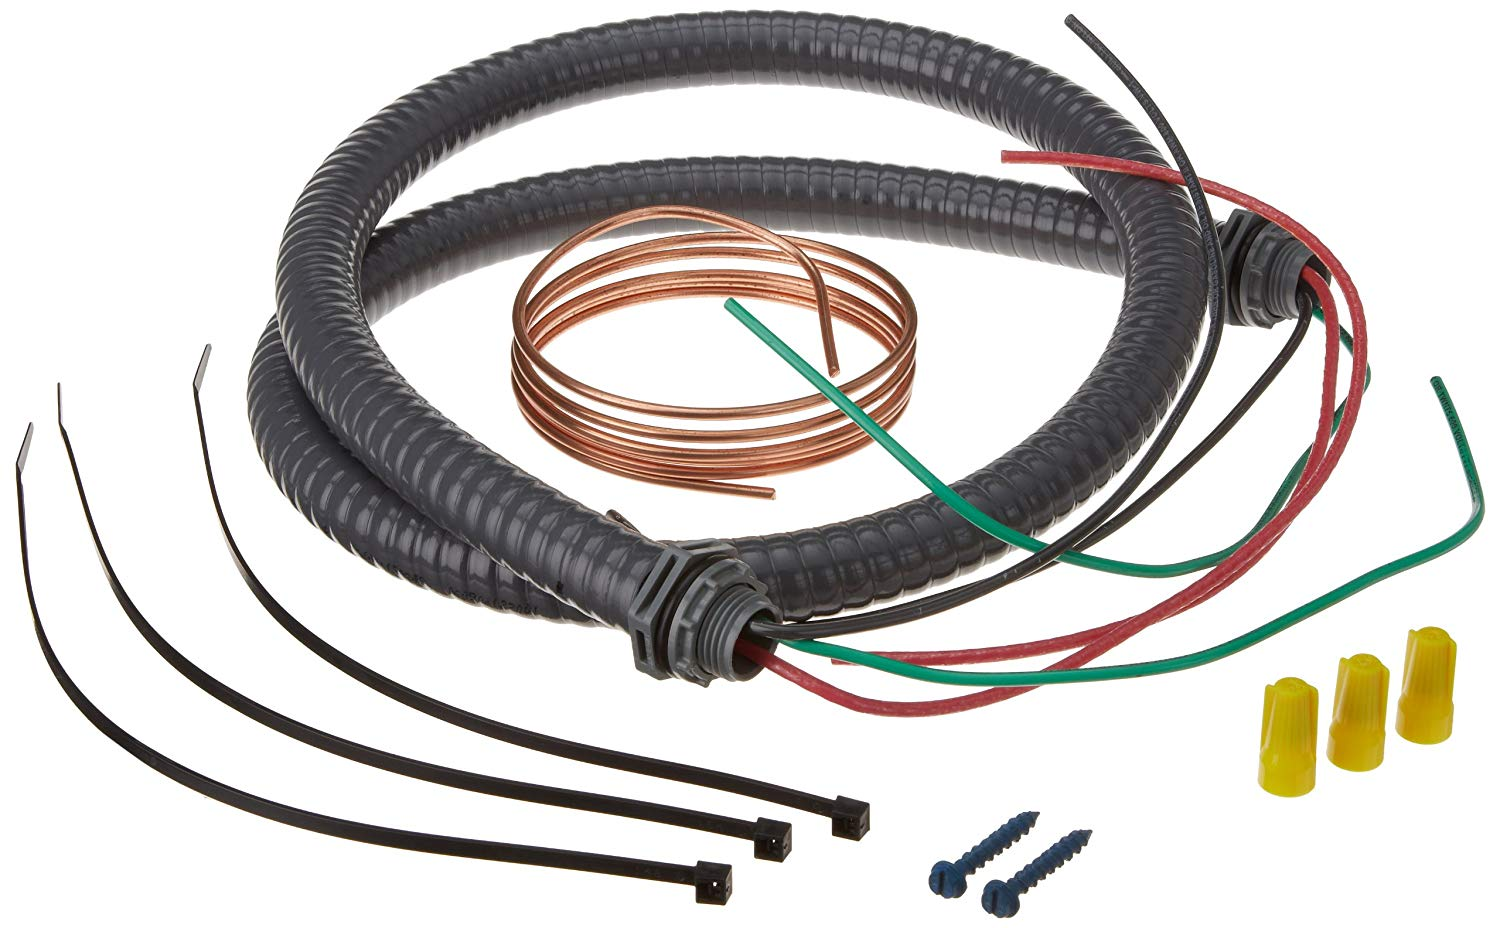 hight resolution of get quotations hayward e kit aquarite pro electrical installation kit